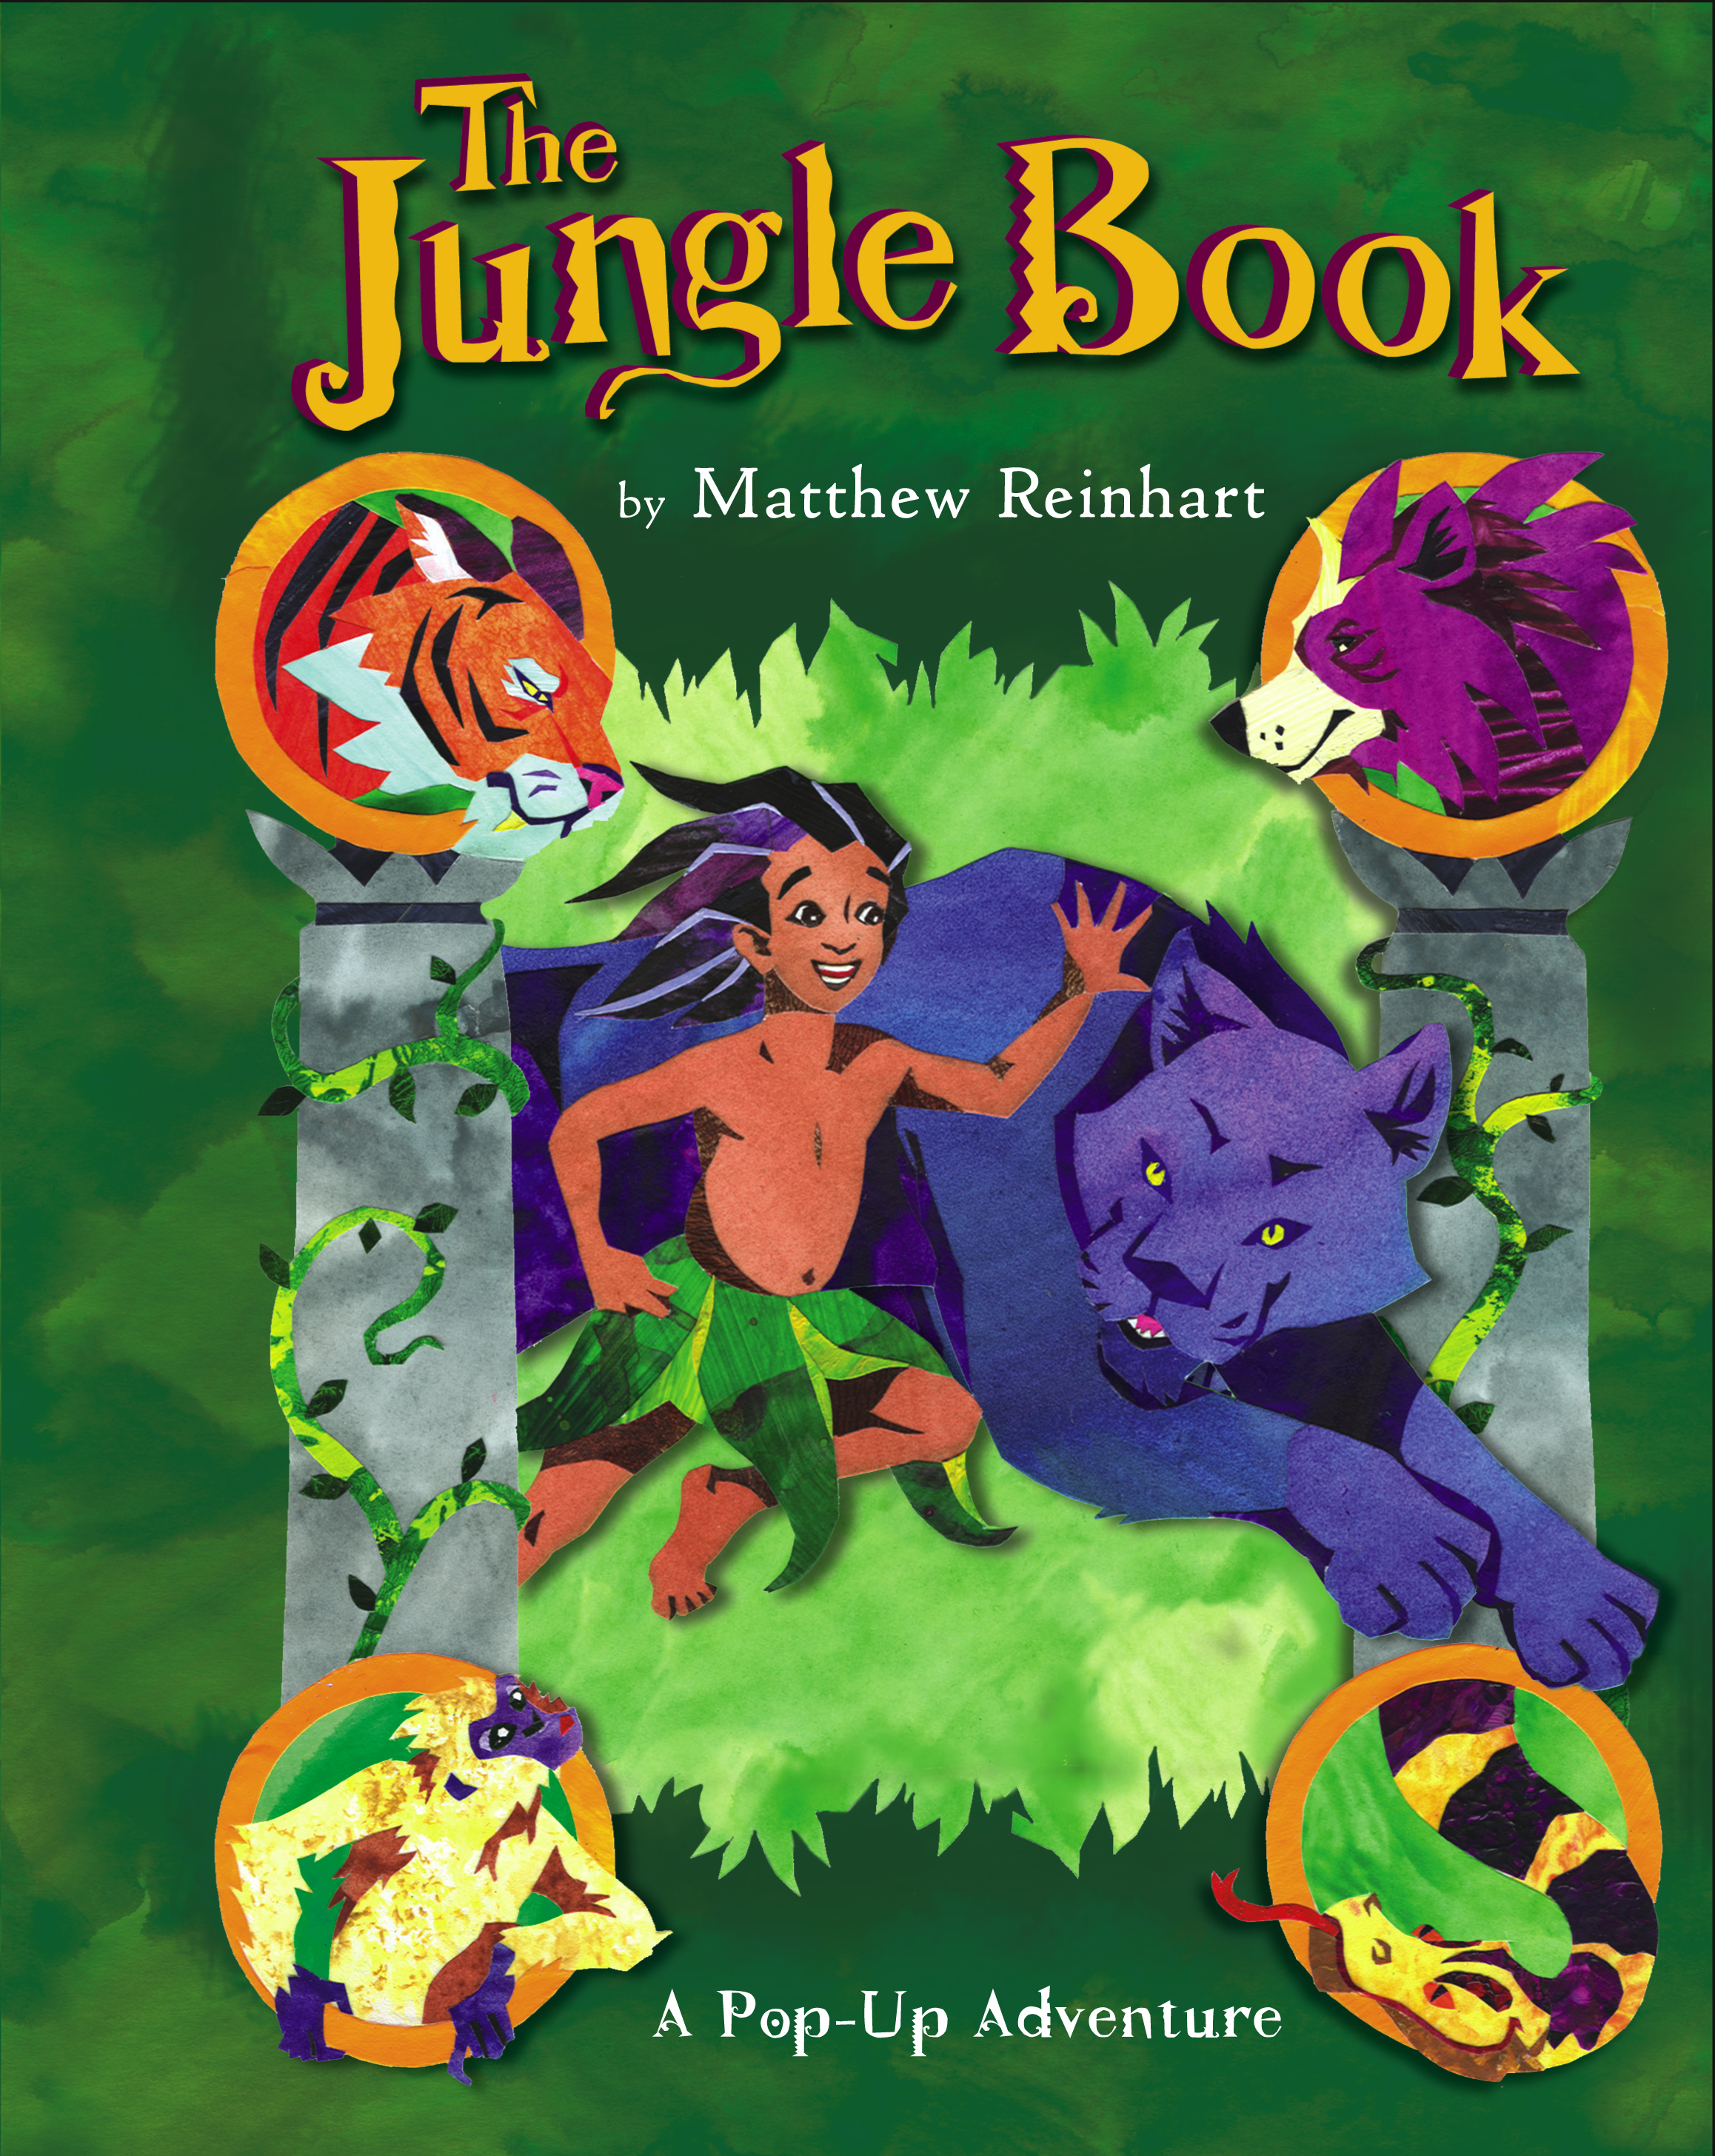 The Jungle Book | Book by Matthew Reinhart | Official Publisher Page